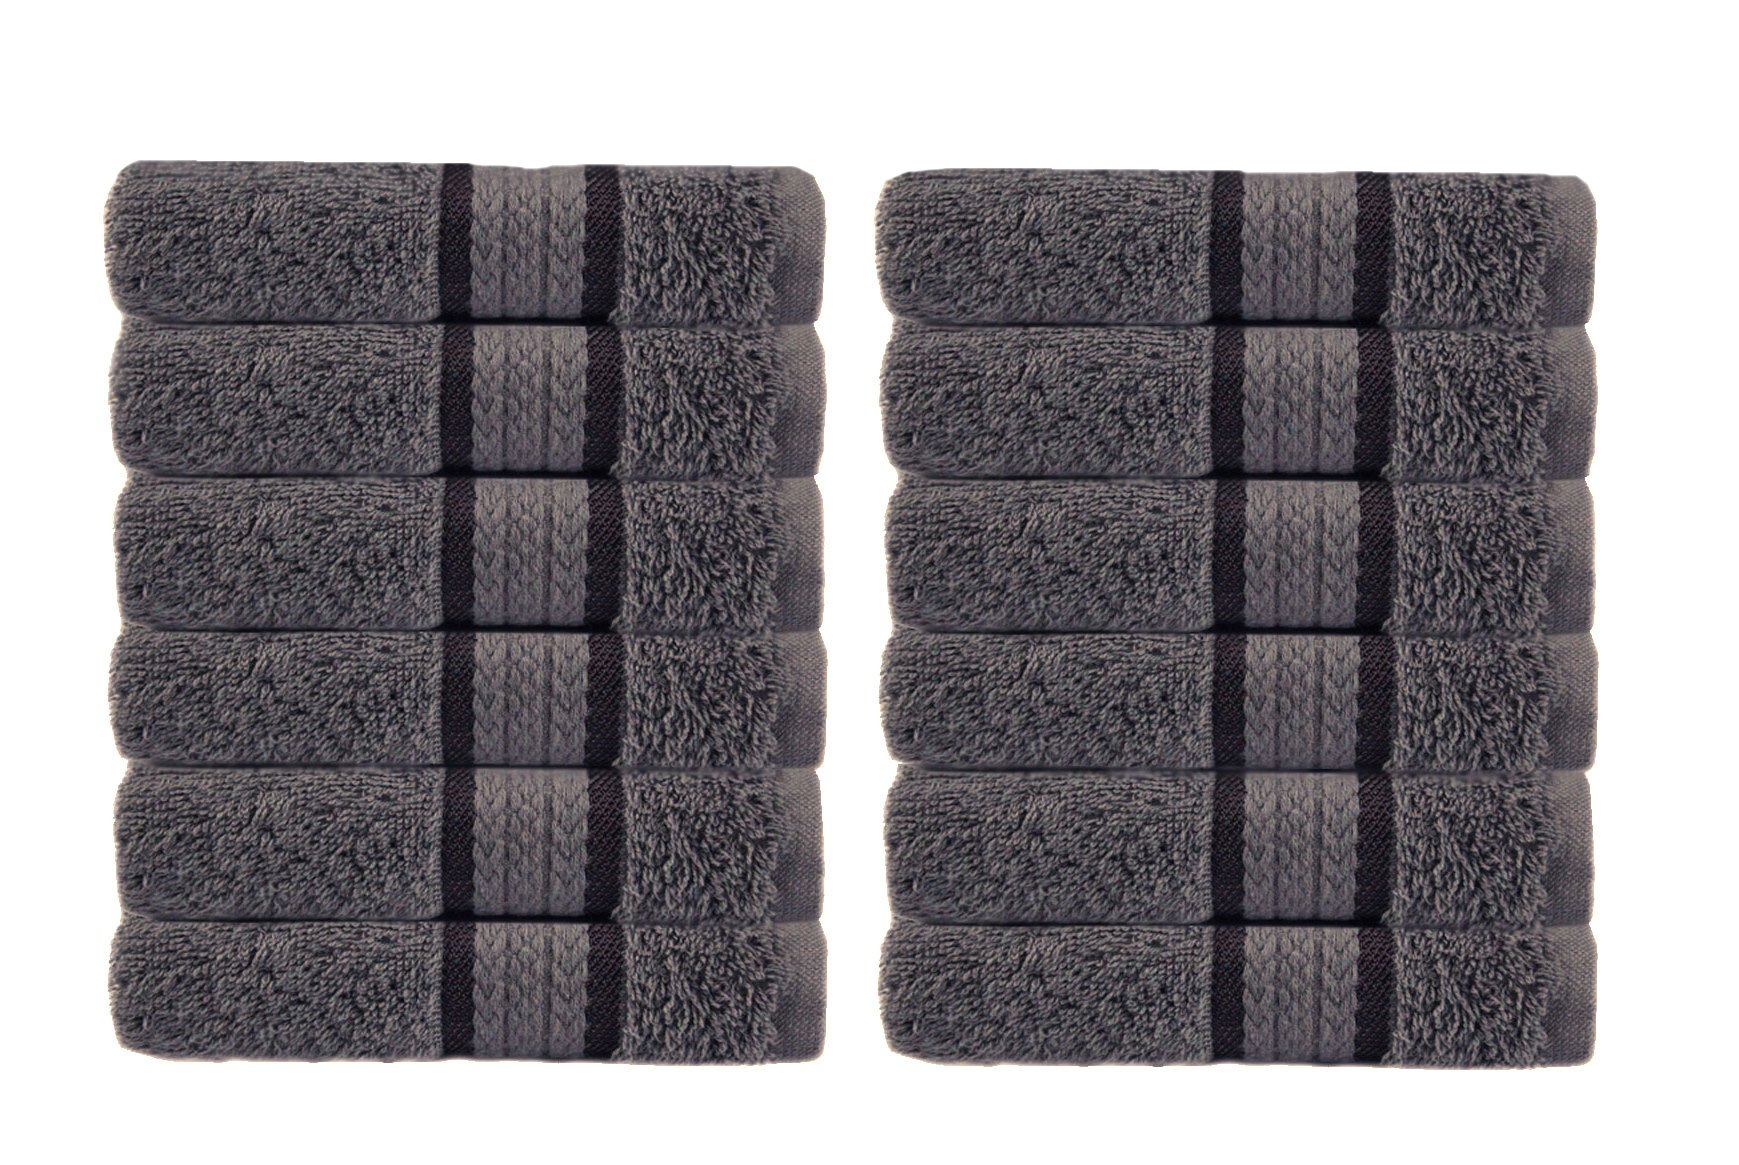 Cotton Craft Ultra Soft 12 Pack Wash Cloths 12x12 Charcoal weighs 2 Ounces each - 100% Pure Ringspun Cotton - Luxurious Rayon trim - Ideal for everyday use - Easy care machine wash by Cotton Craft